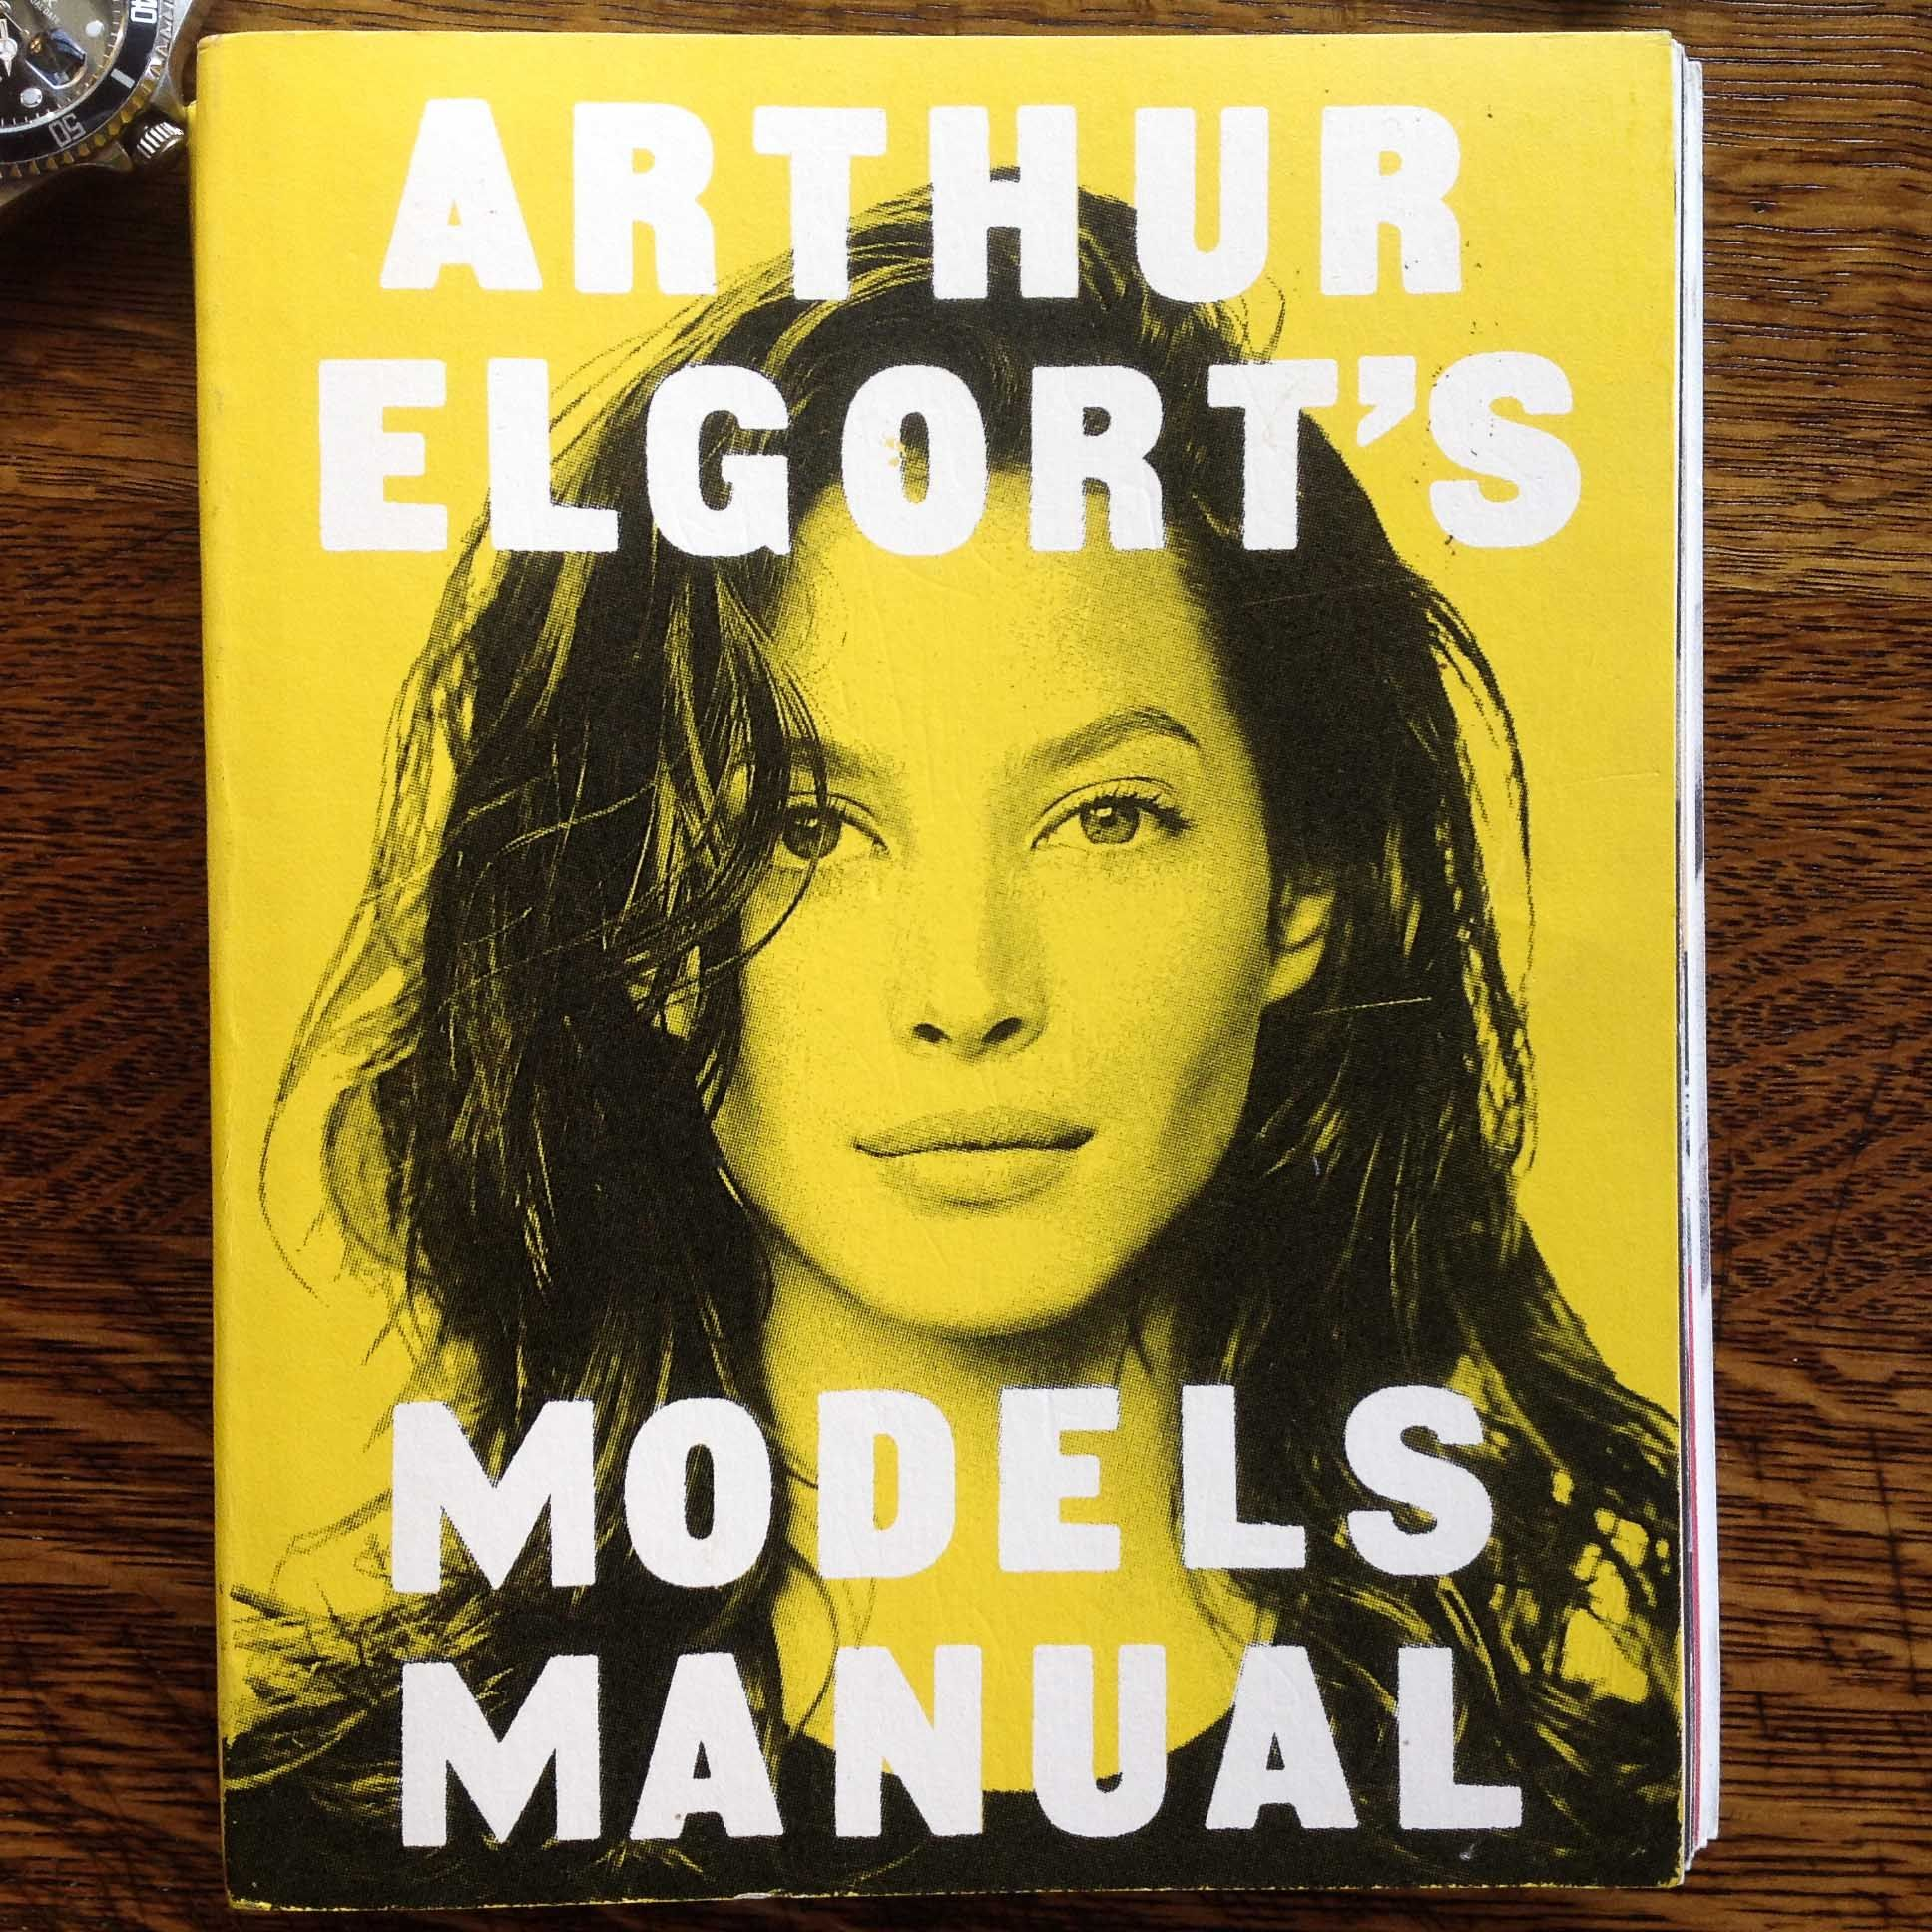 One of the fashion director's top book picks, from one of